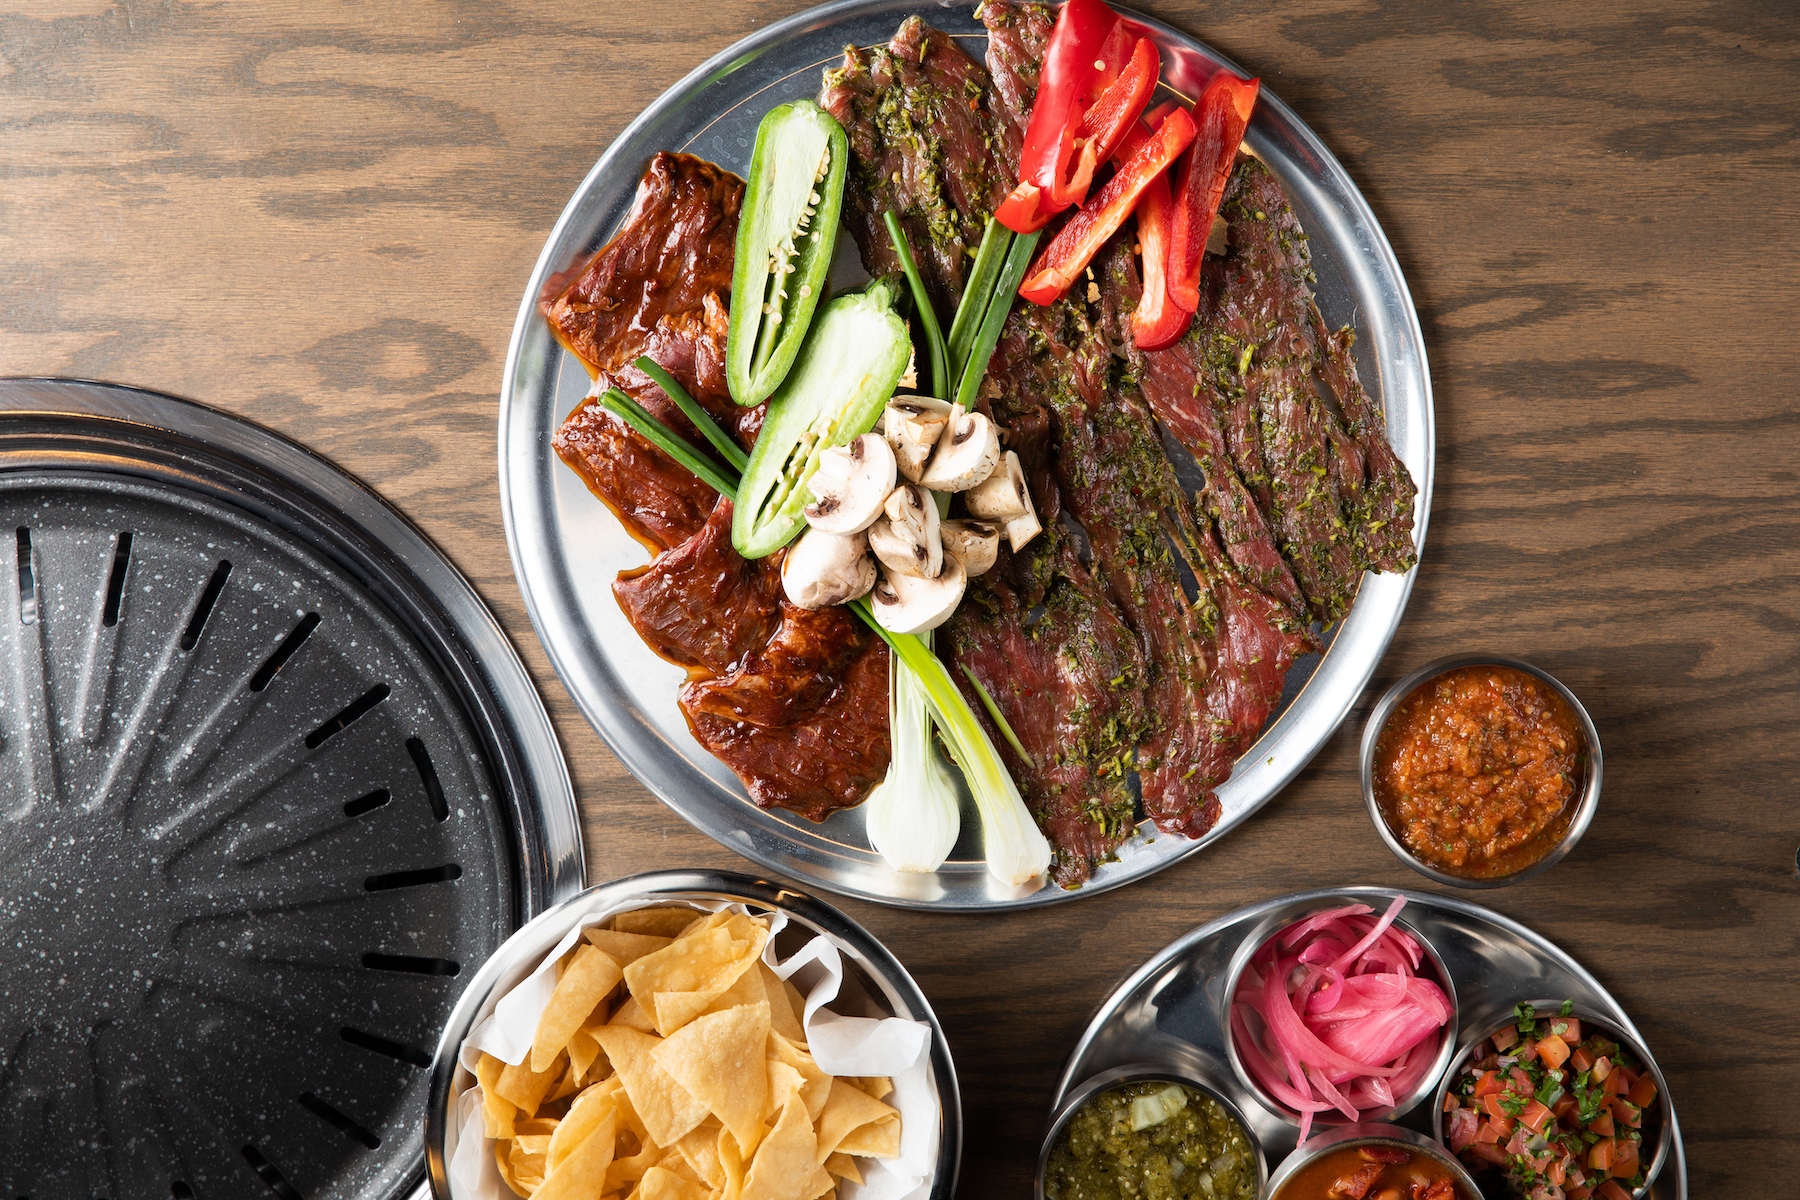 Customers Grill Their Own Mexican At This New Lincoln Park Restaurant